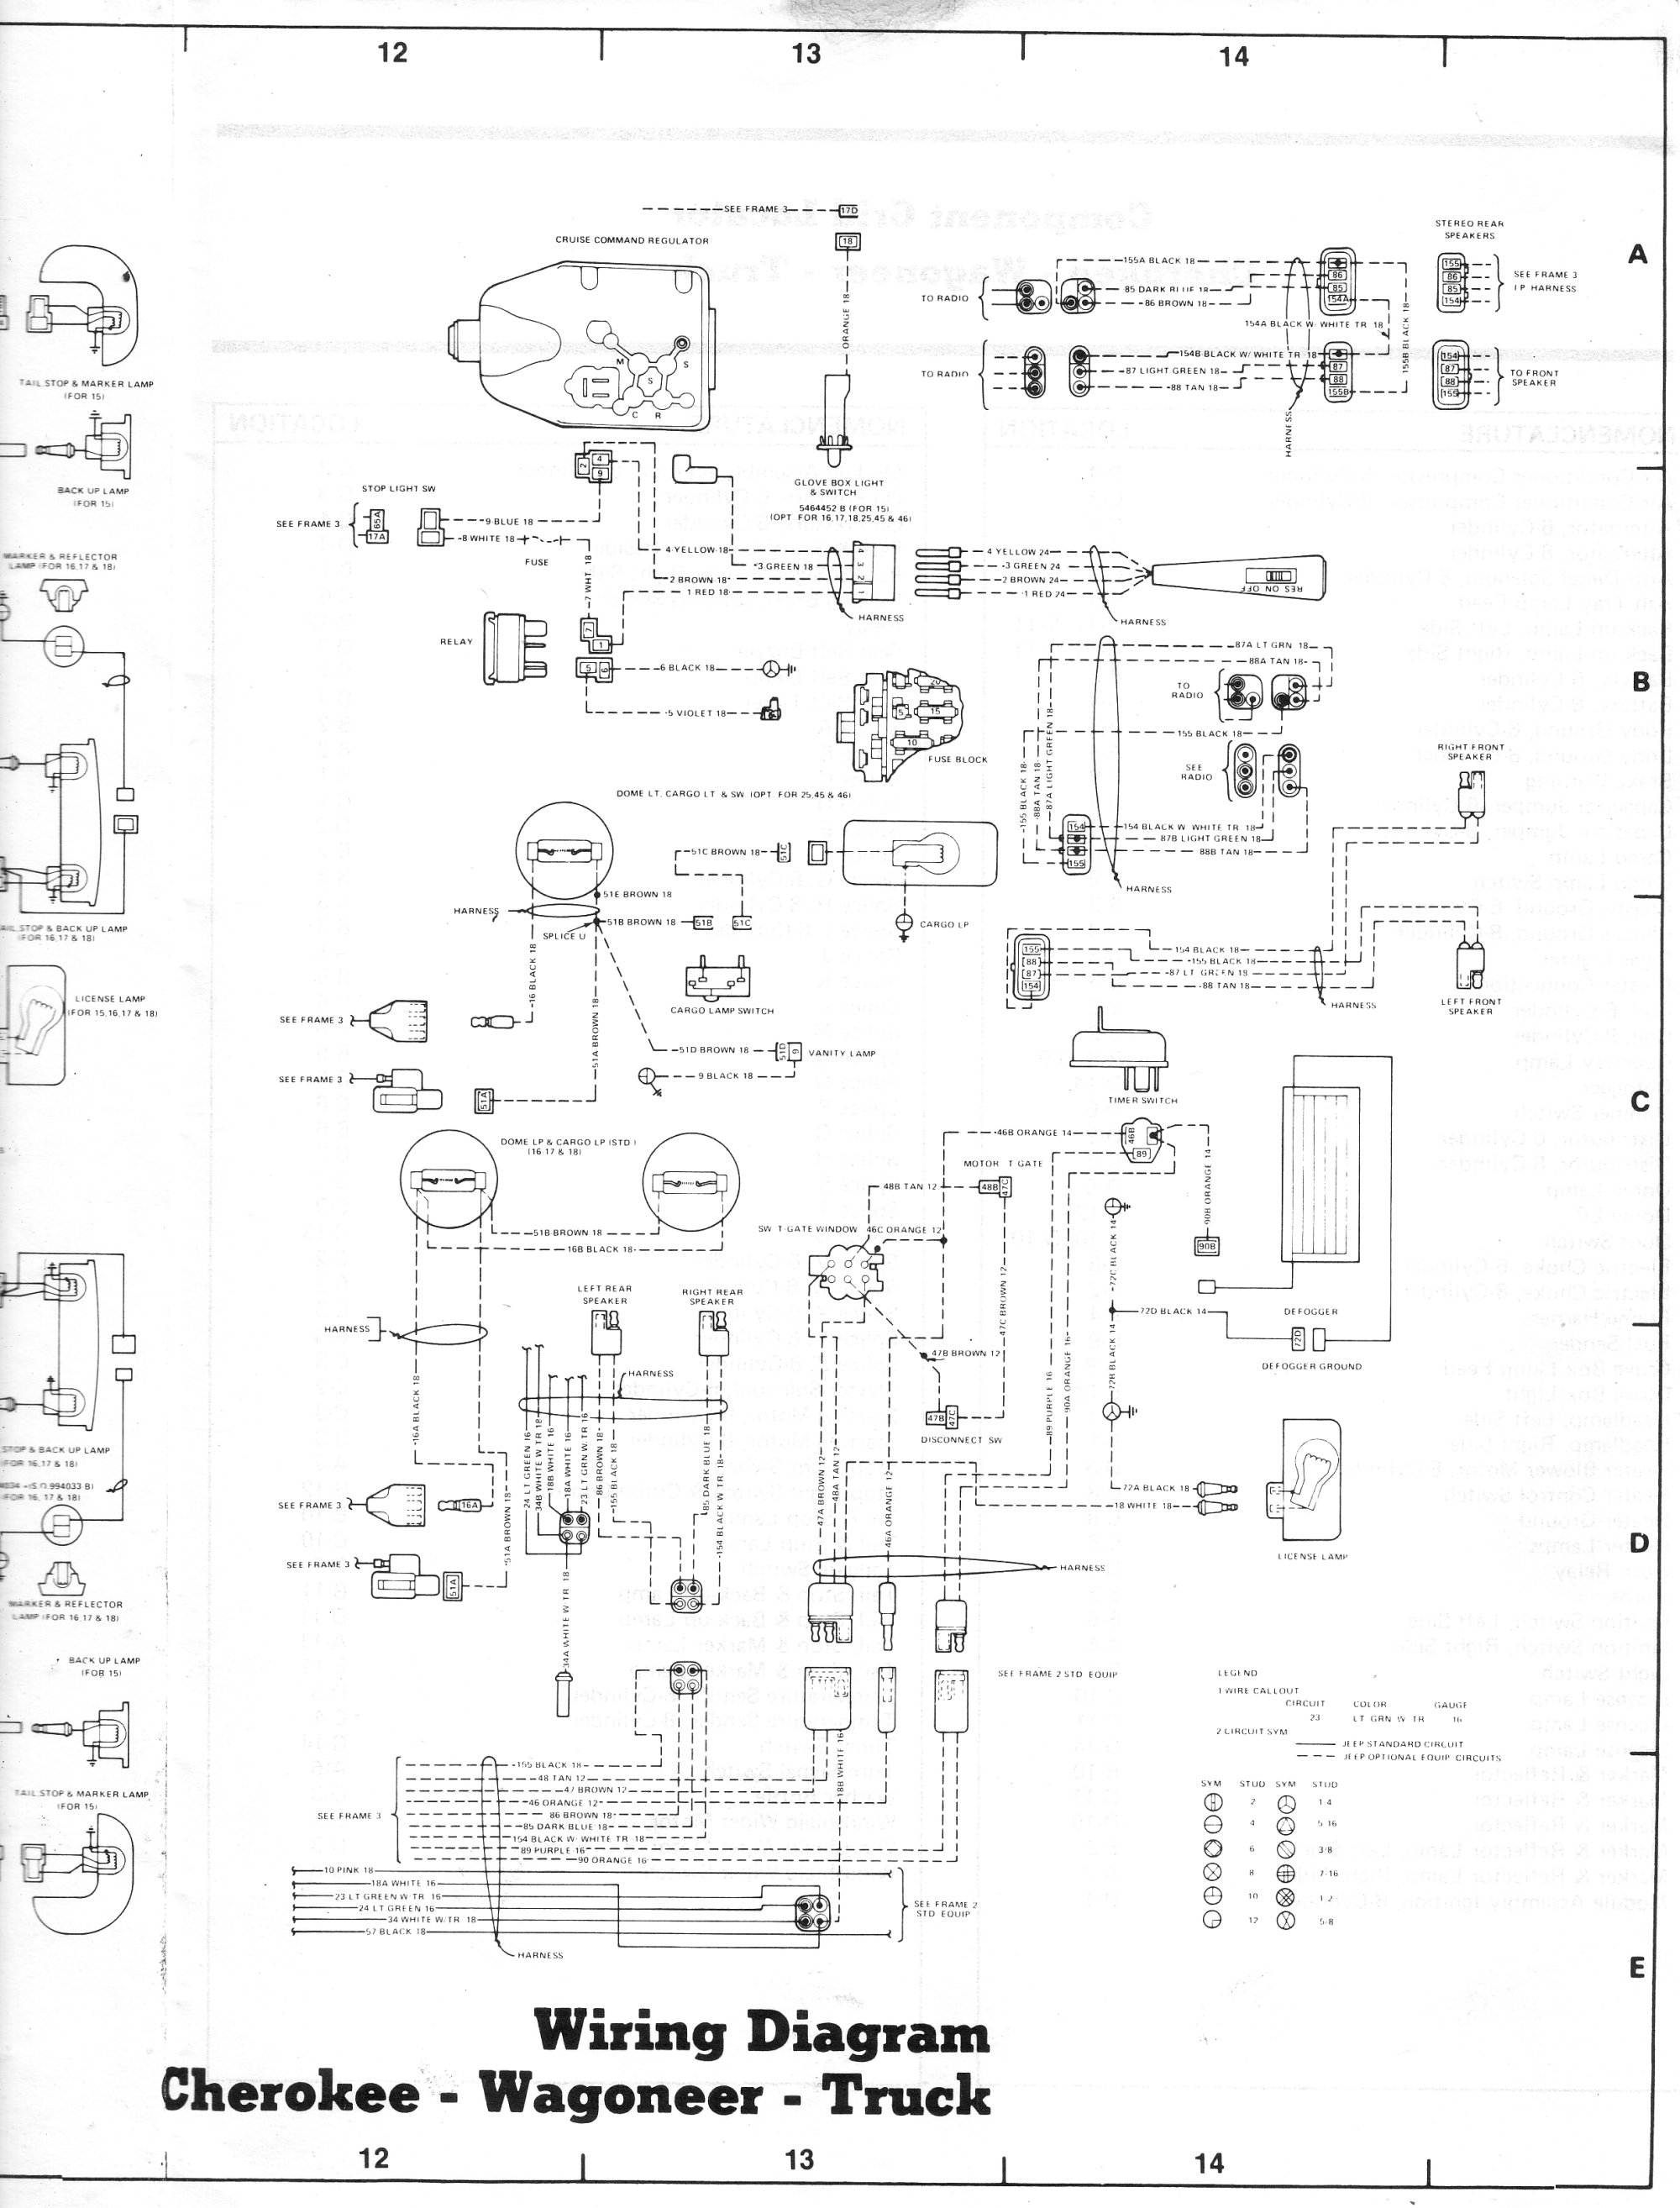 1985 jeep j10 wiring diagrams